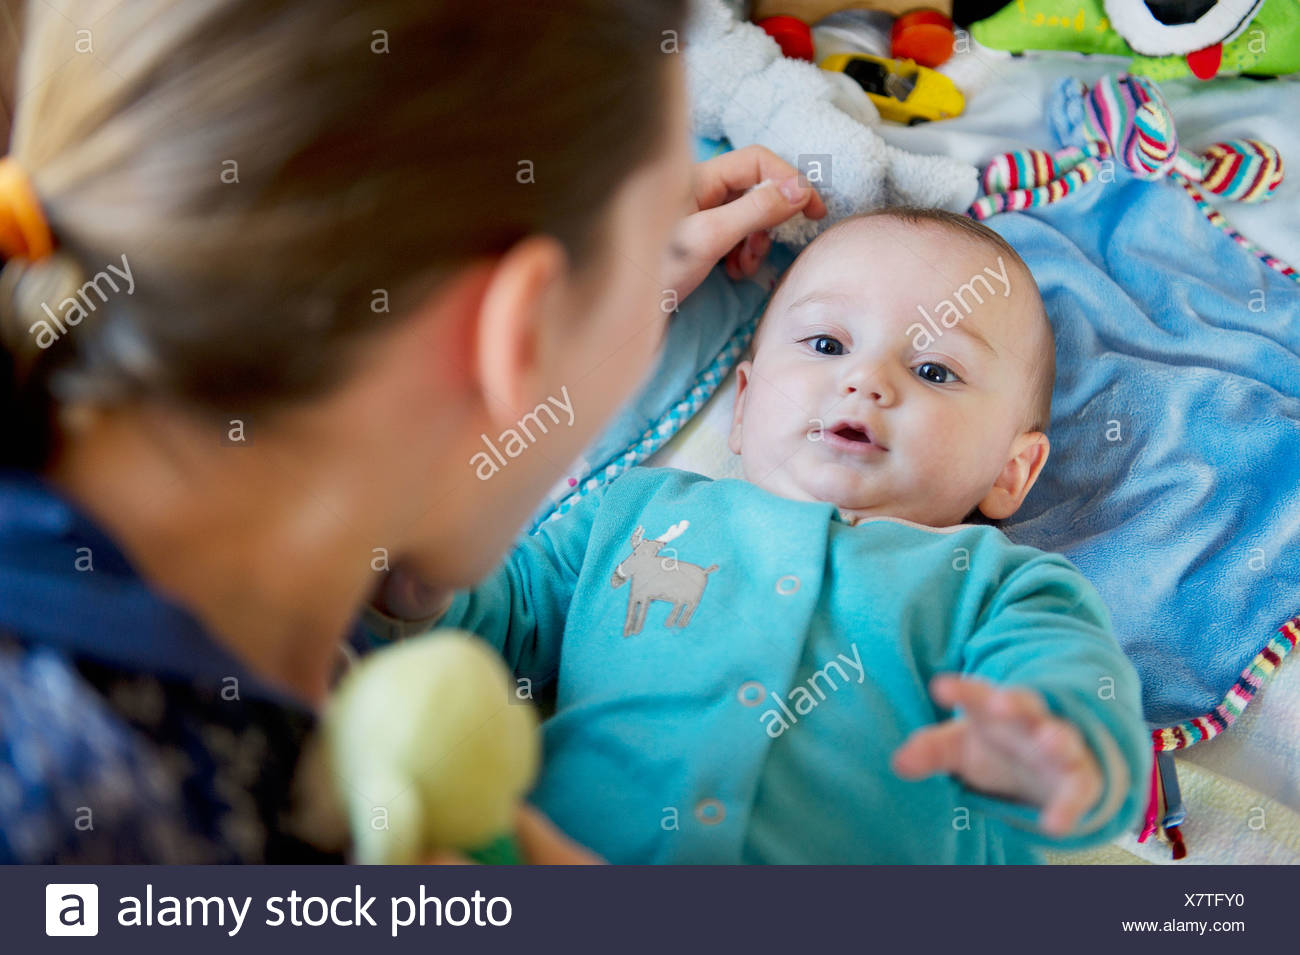 Girl playing with baby brother on bed - Stock Image